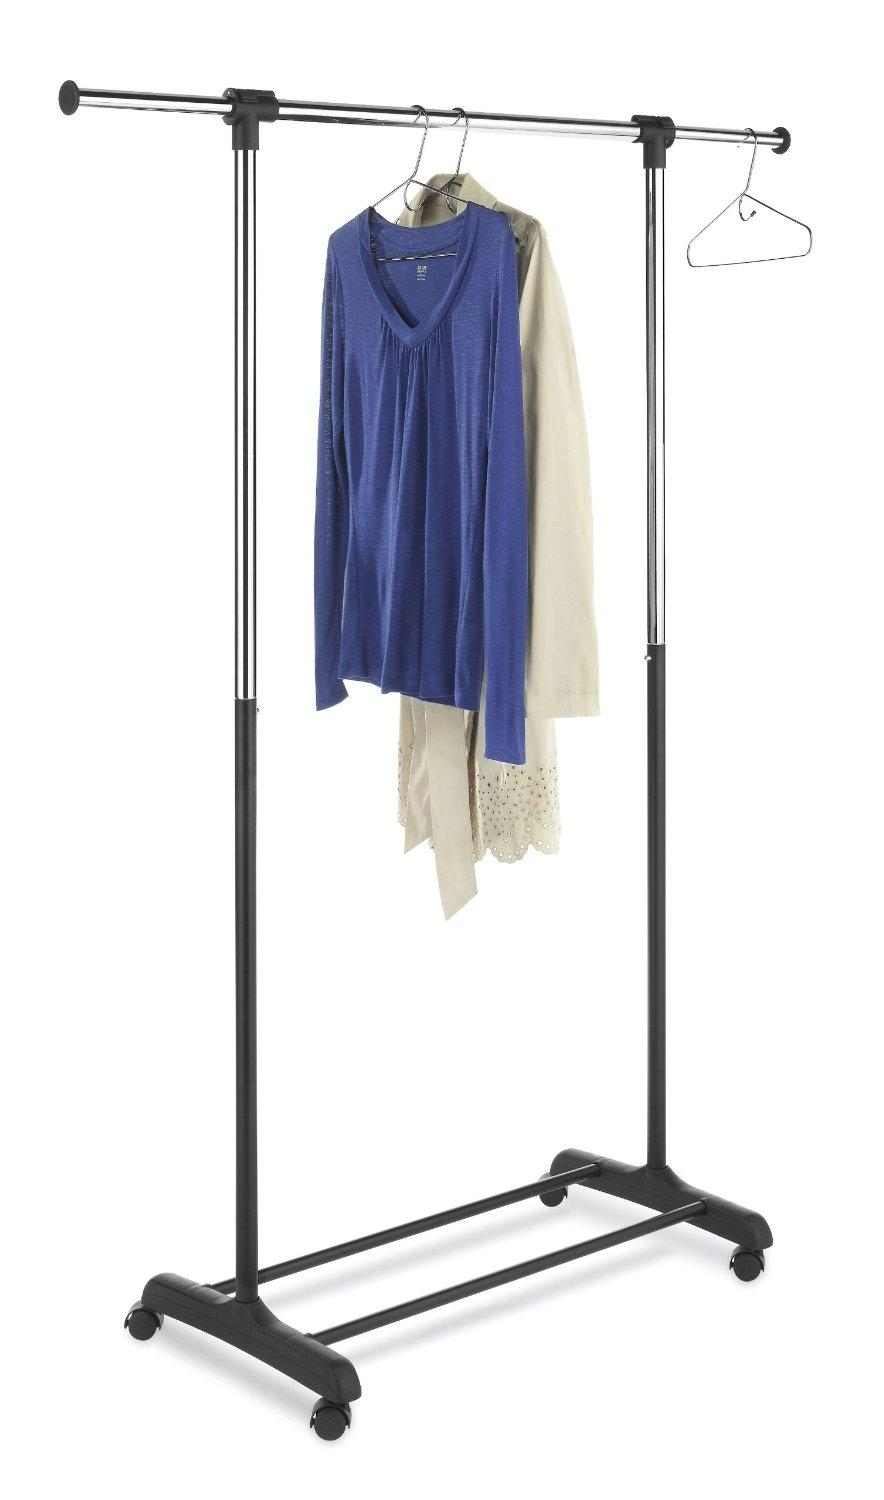 $12.59 Whitmor 6021-4298 Ebony Chrome Collection Extendable Garment Rack